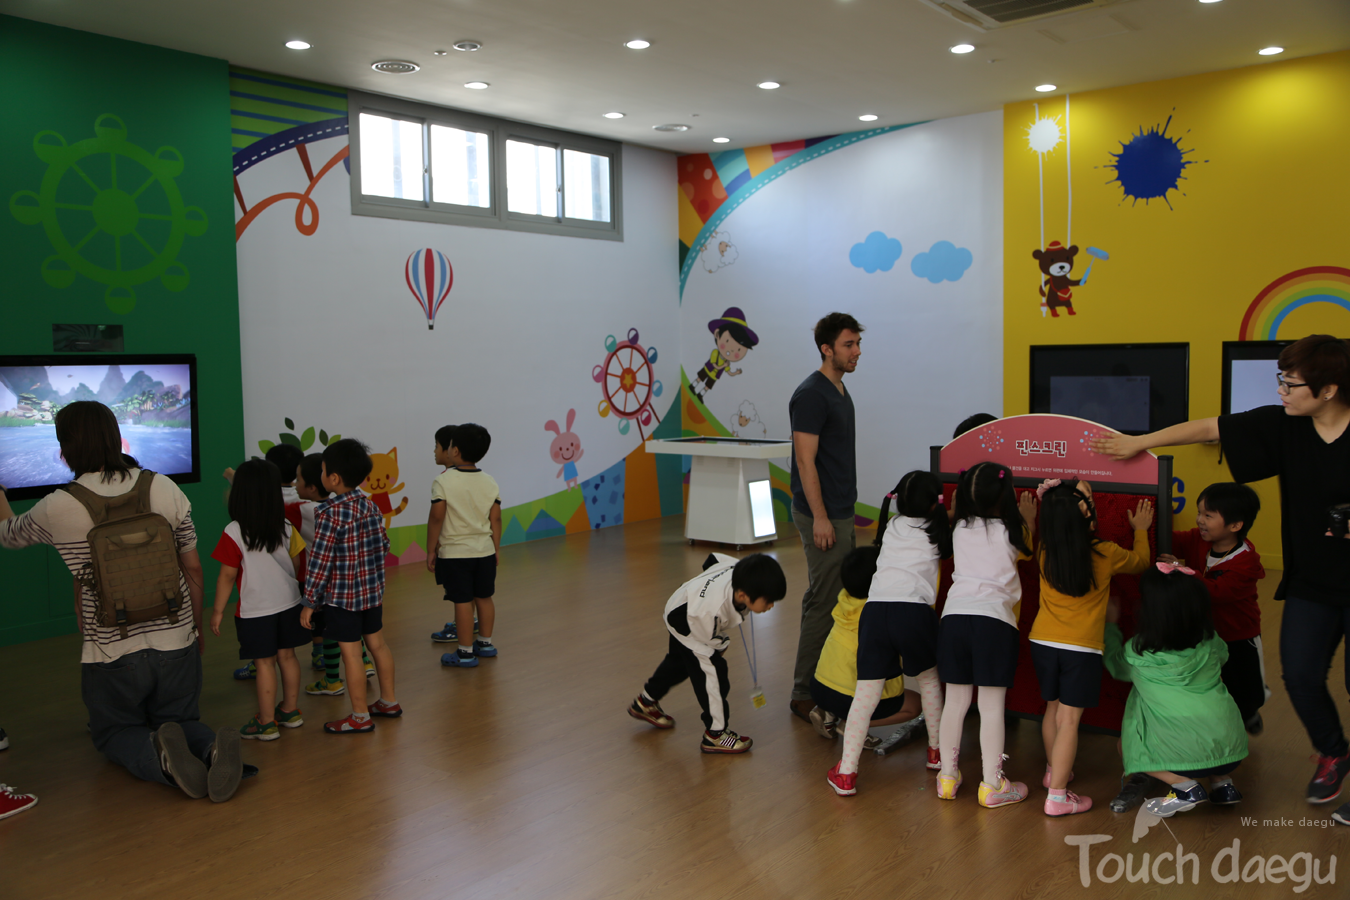 A variety of play equipment in Daegu Art Factory